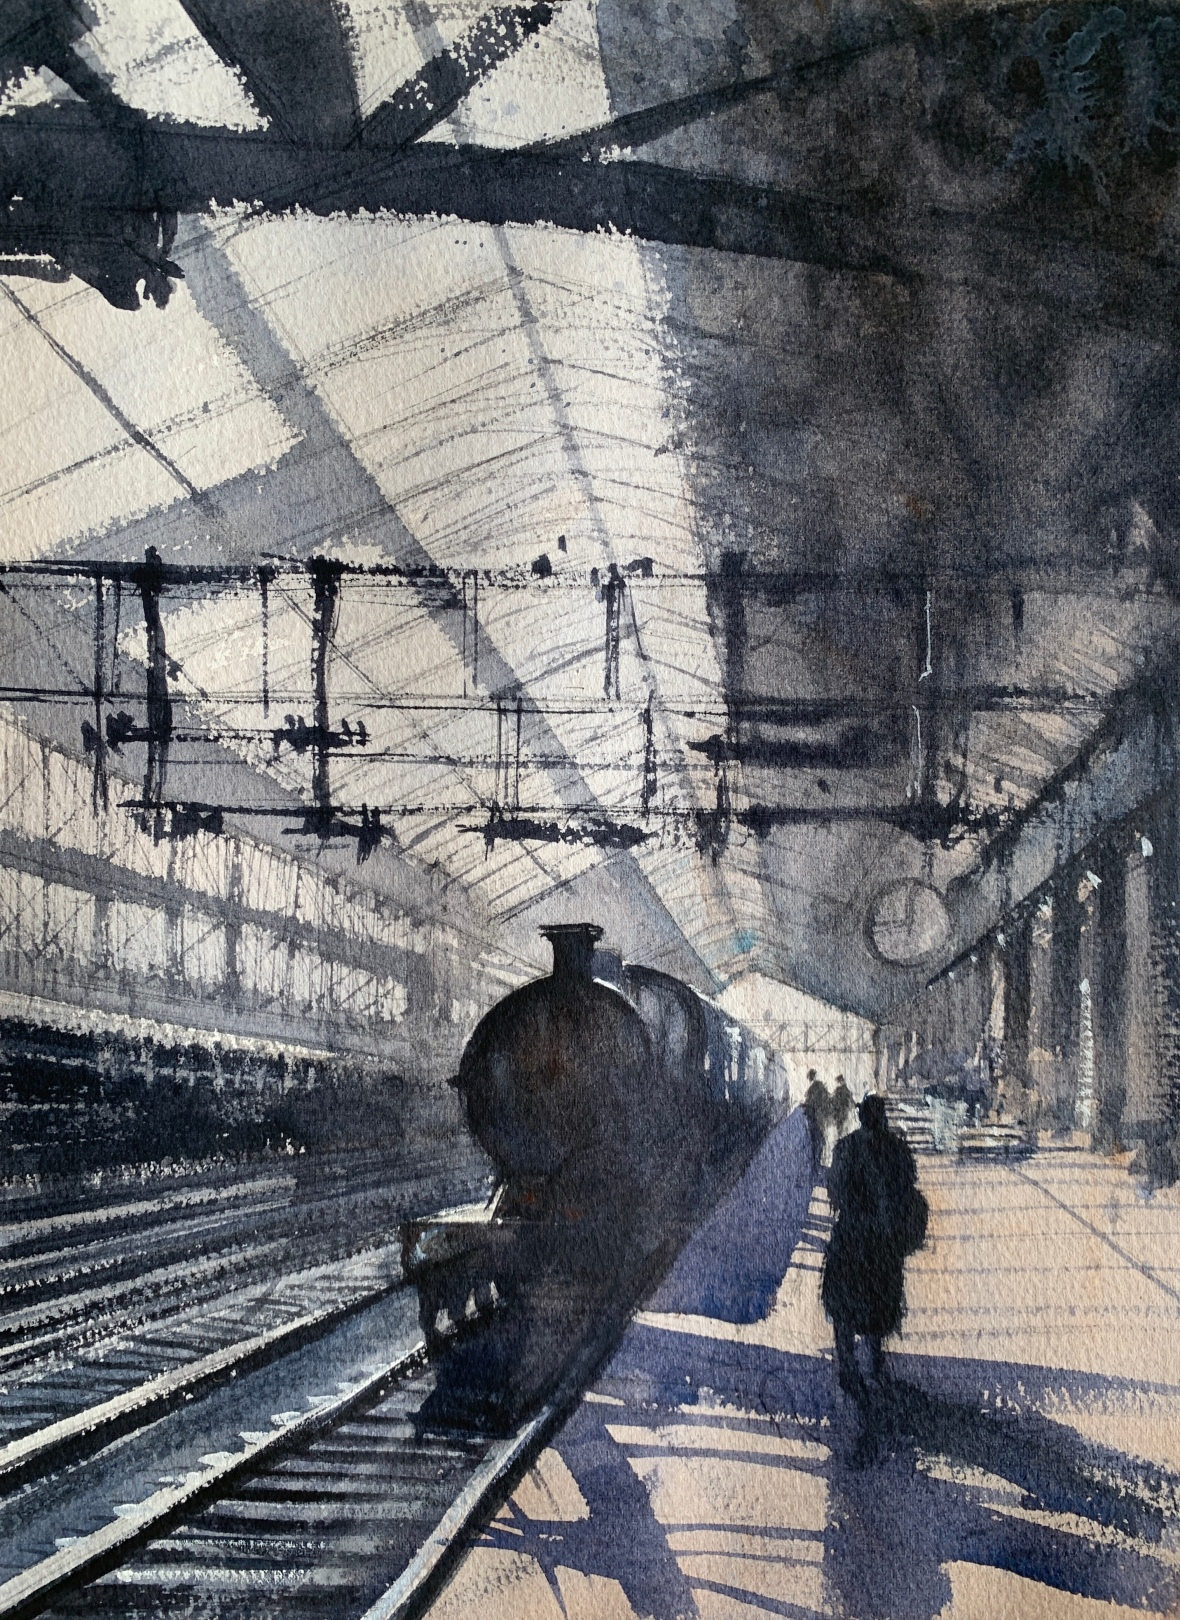 Watercolour painting of a train station from a bygone era by artist John Haywood